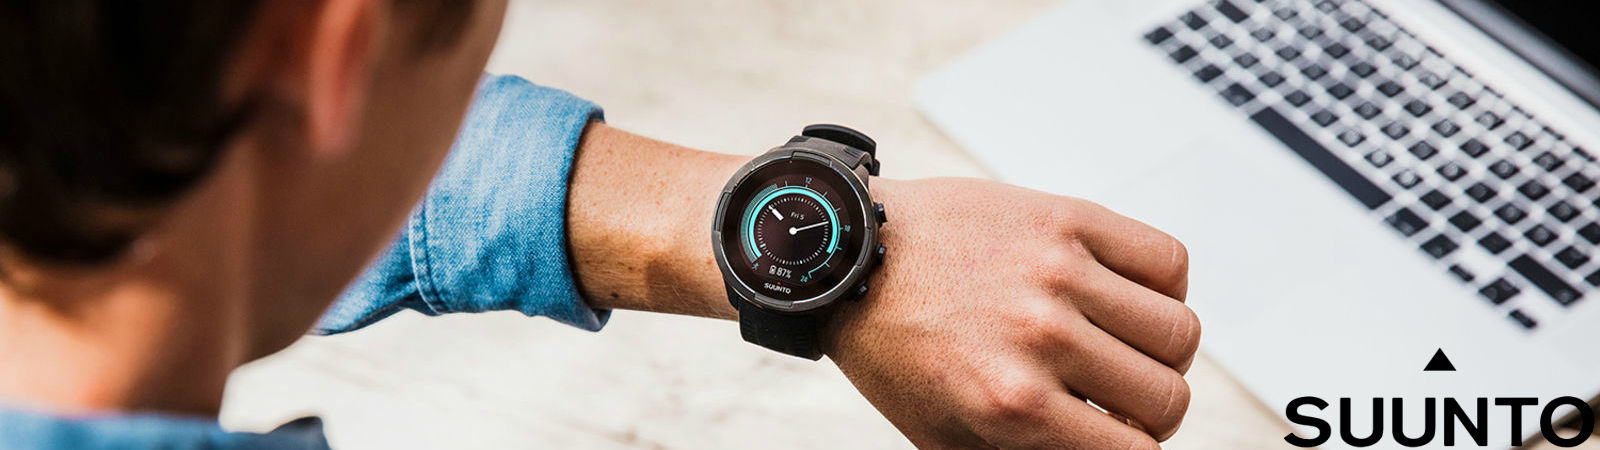 Suunto 9 Smartwatch available here at Sportique.com